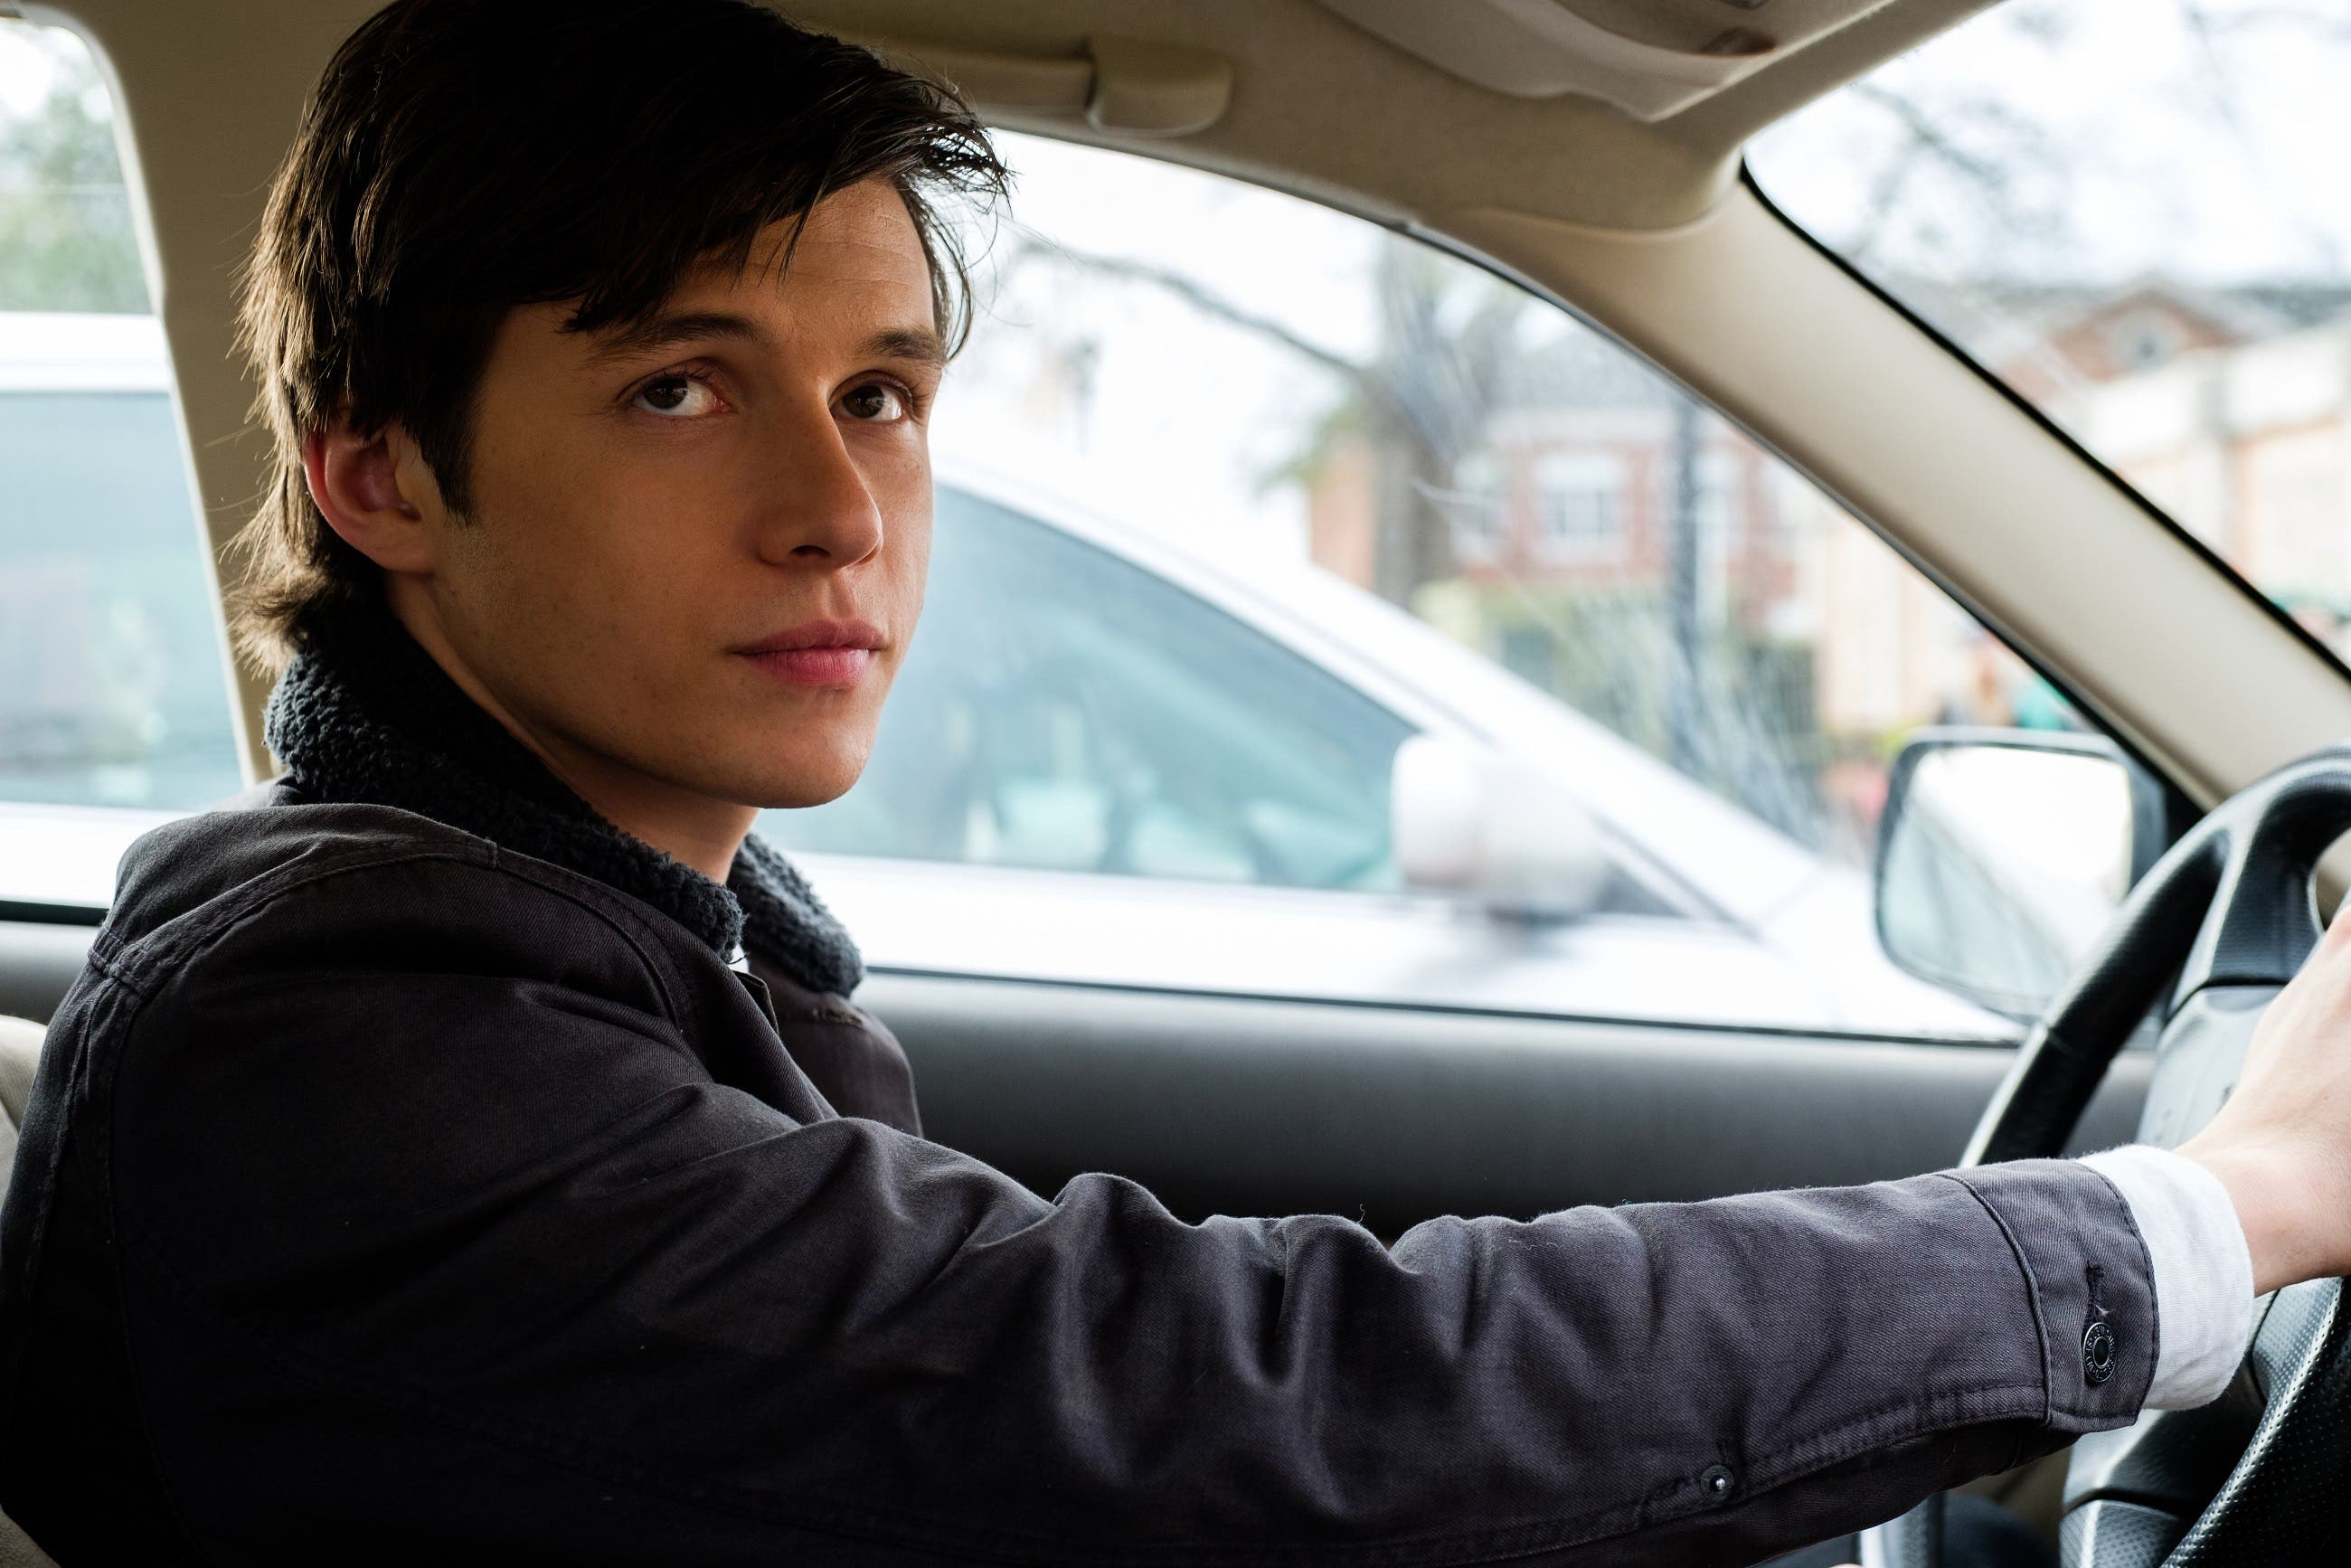 'Love, Simon' Brings Universal YA Feels Starting May 9 in ...